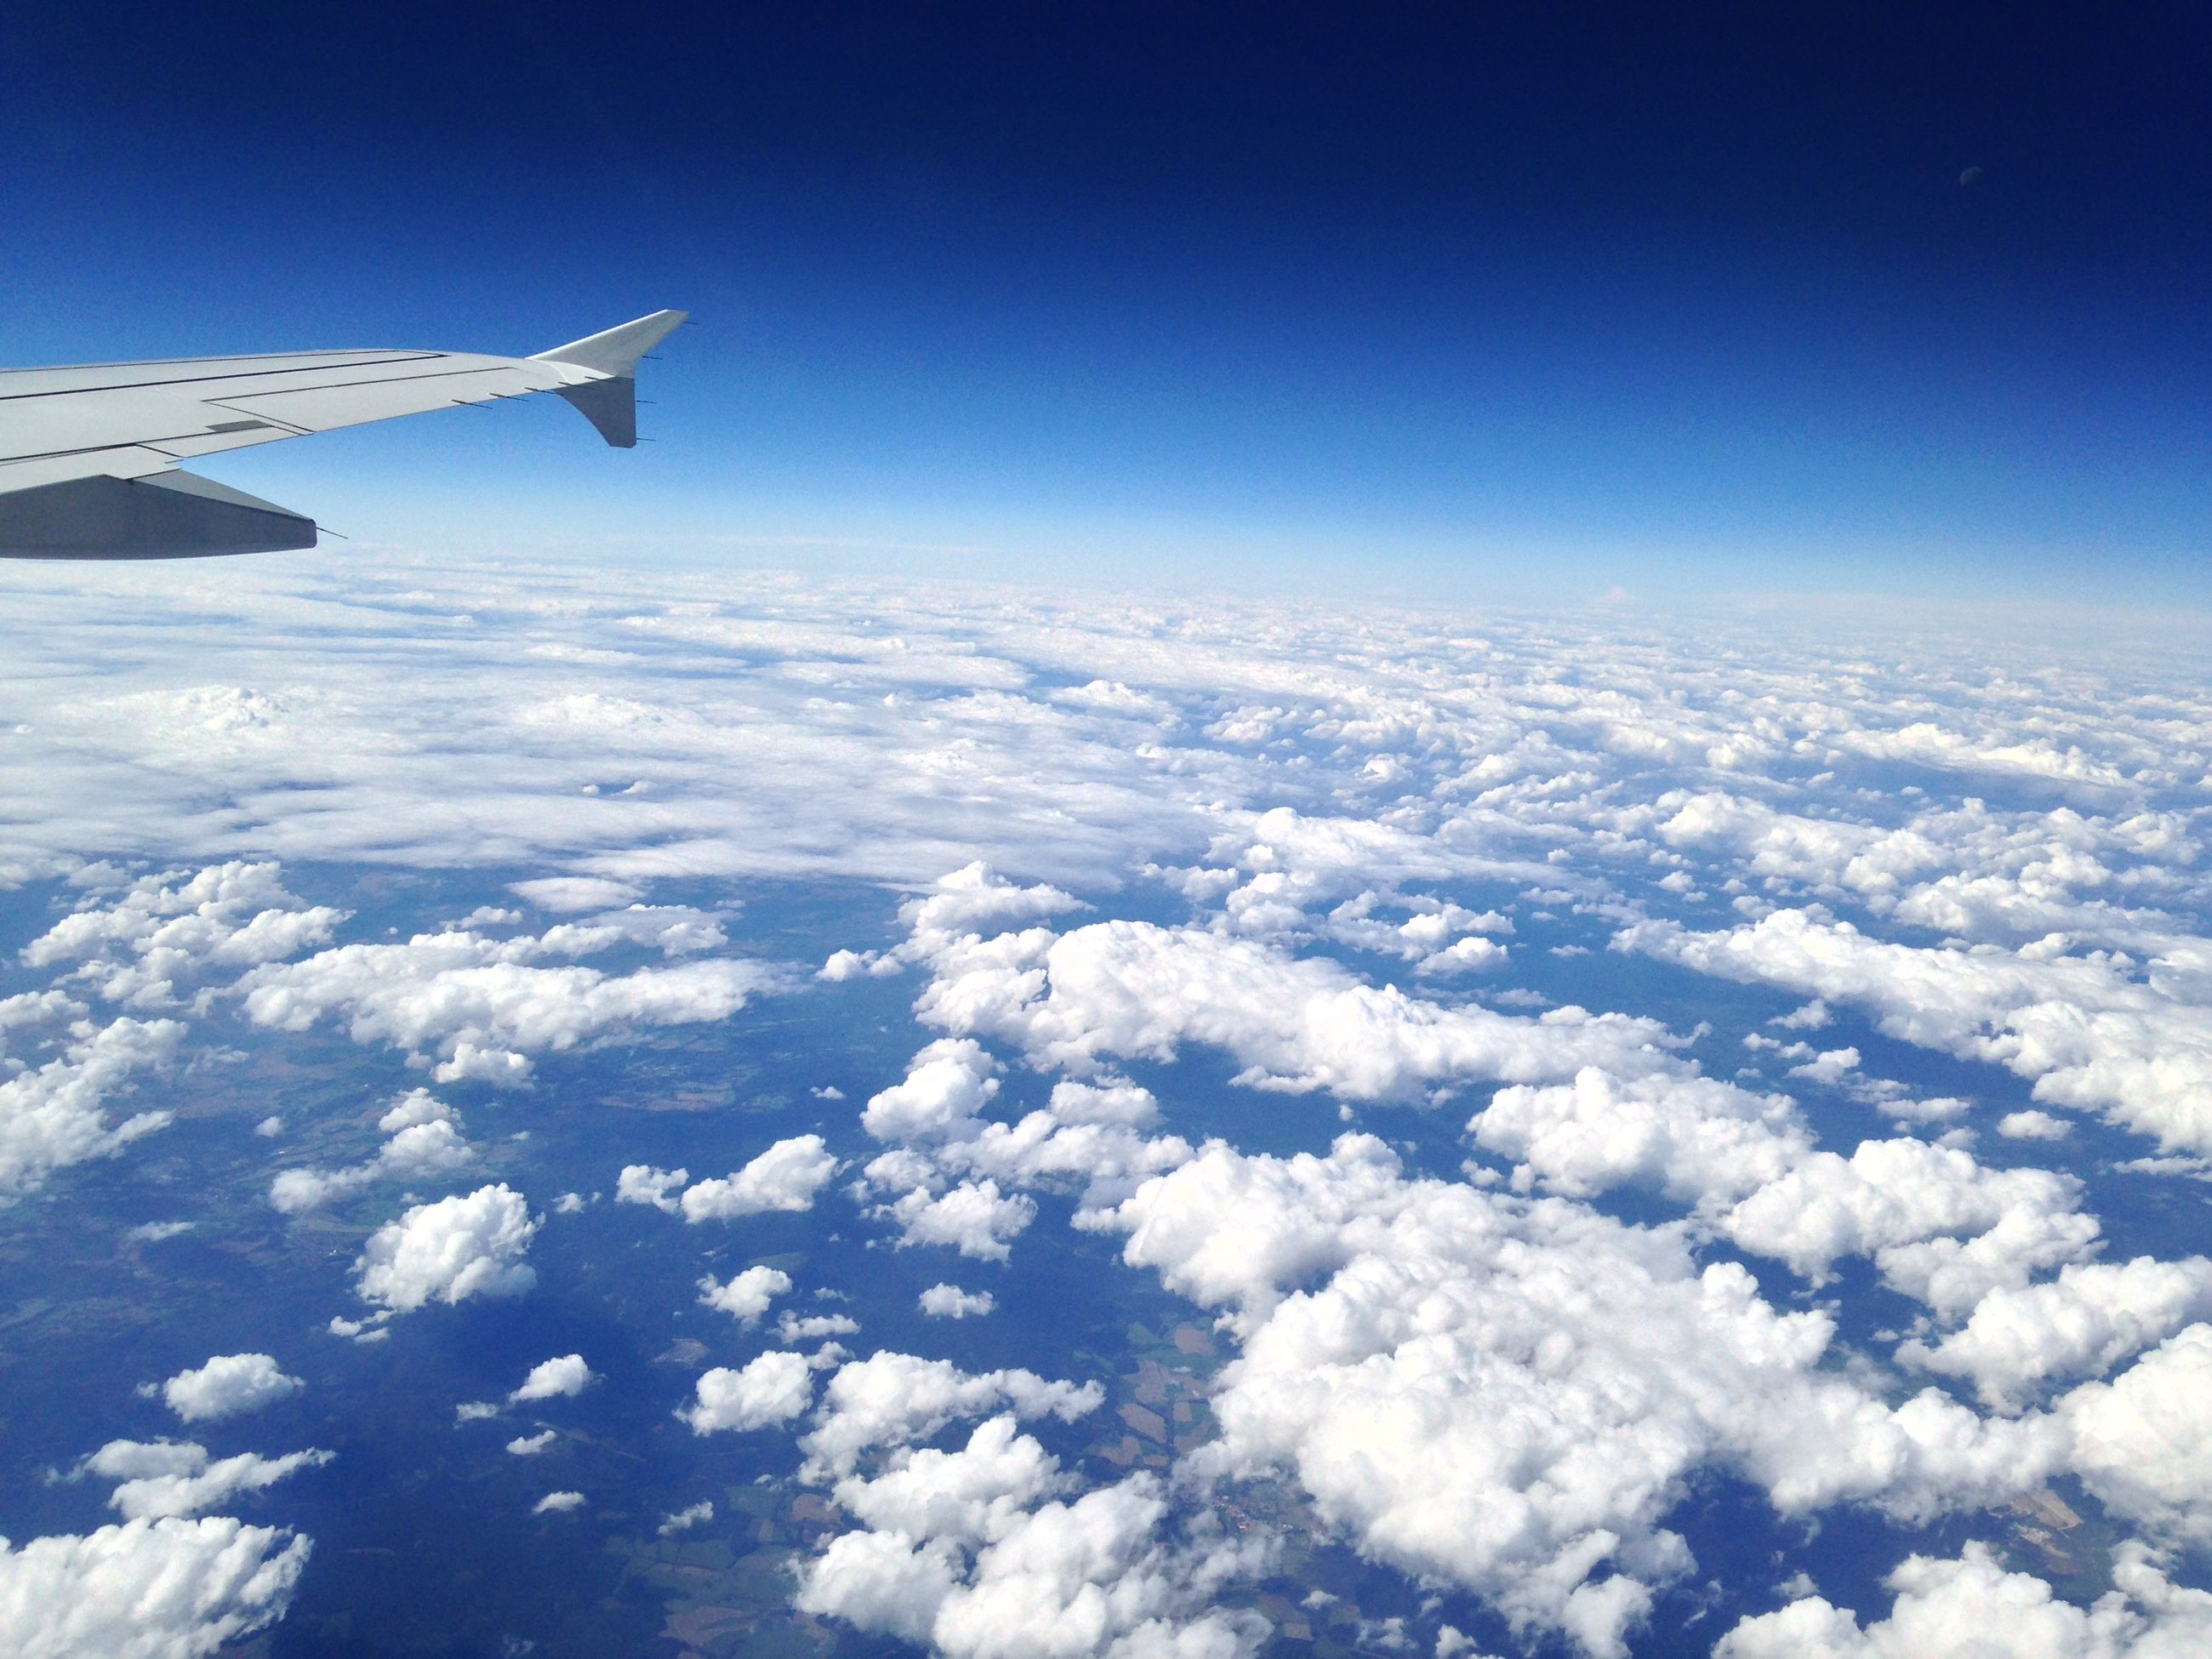 flying, airplane, air vehicle, aircraft wing, aerial view, blue, transportation, mid-air, sky, part of, landscape, beauty in nature, scenics, mode of transport, cropped, nature, cloud - sky, travel, white color, cloudscape